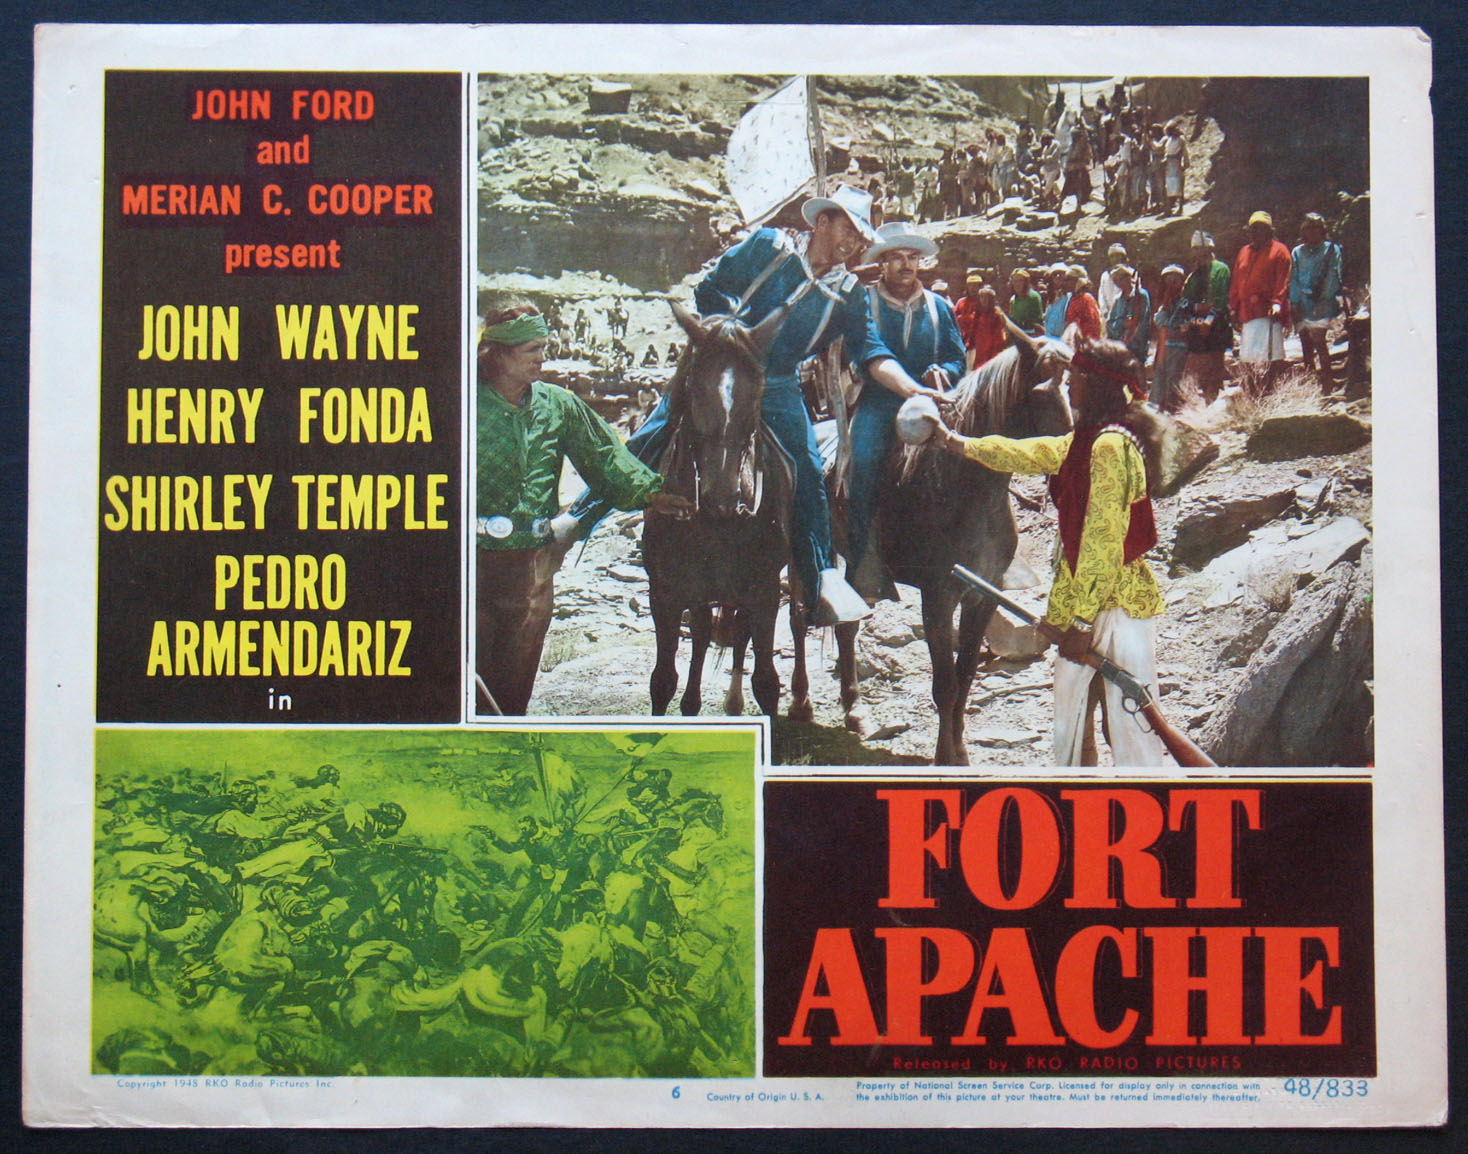 FORT APACHE @ FilmPosters.com